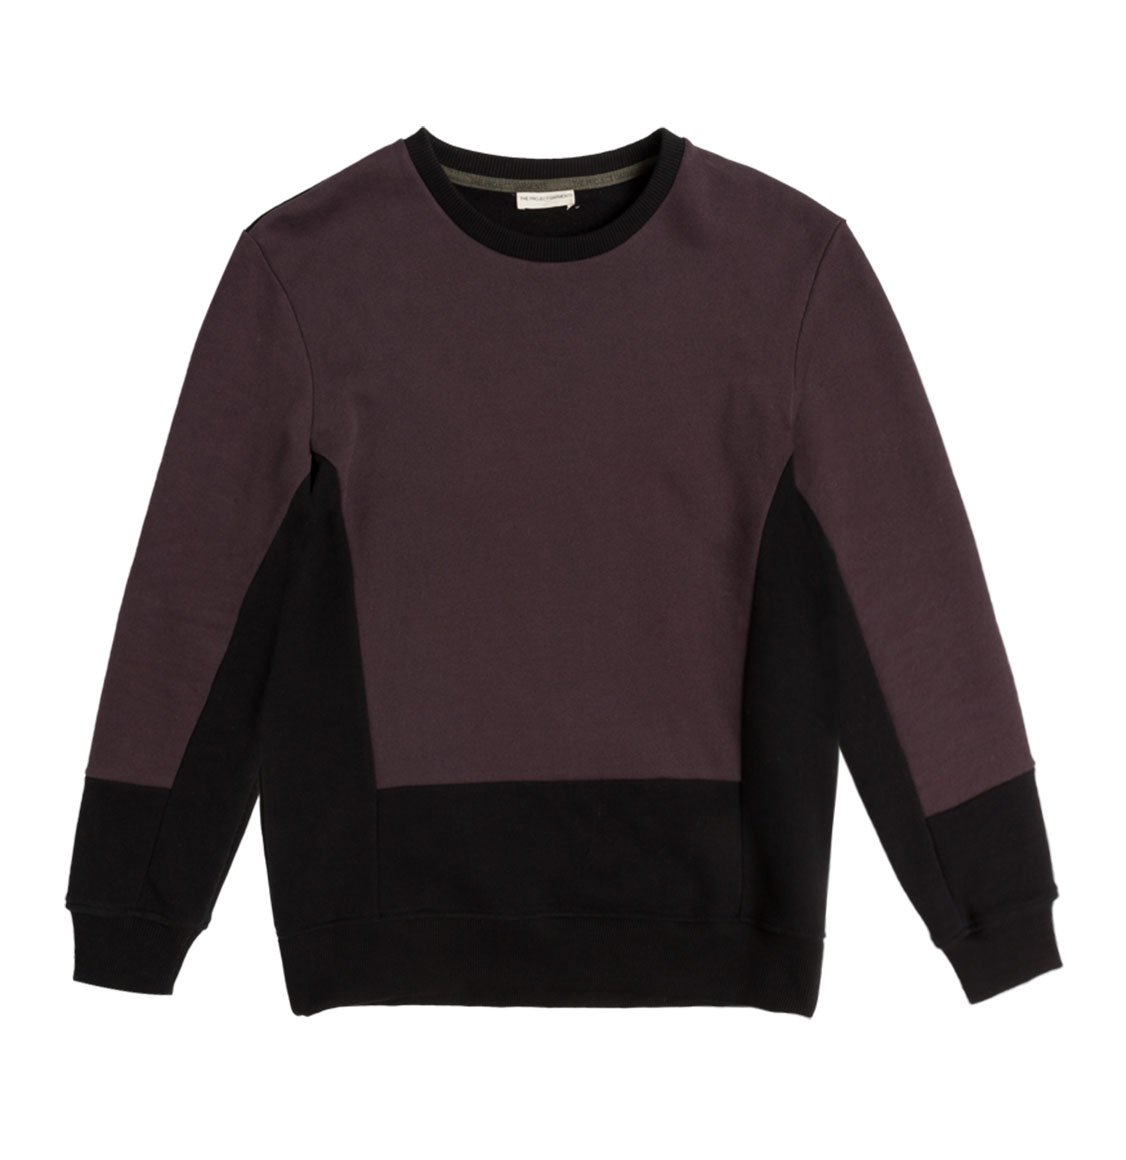 The Project Garments Horizontal Color Block Crew Neck Sweatshirt Burgundy